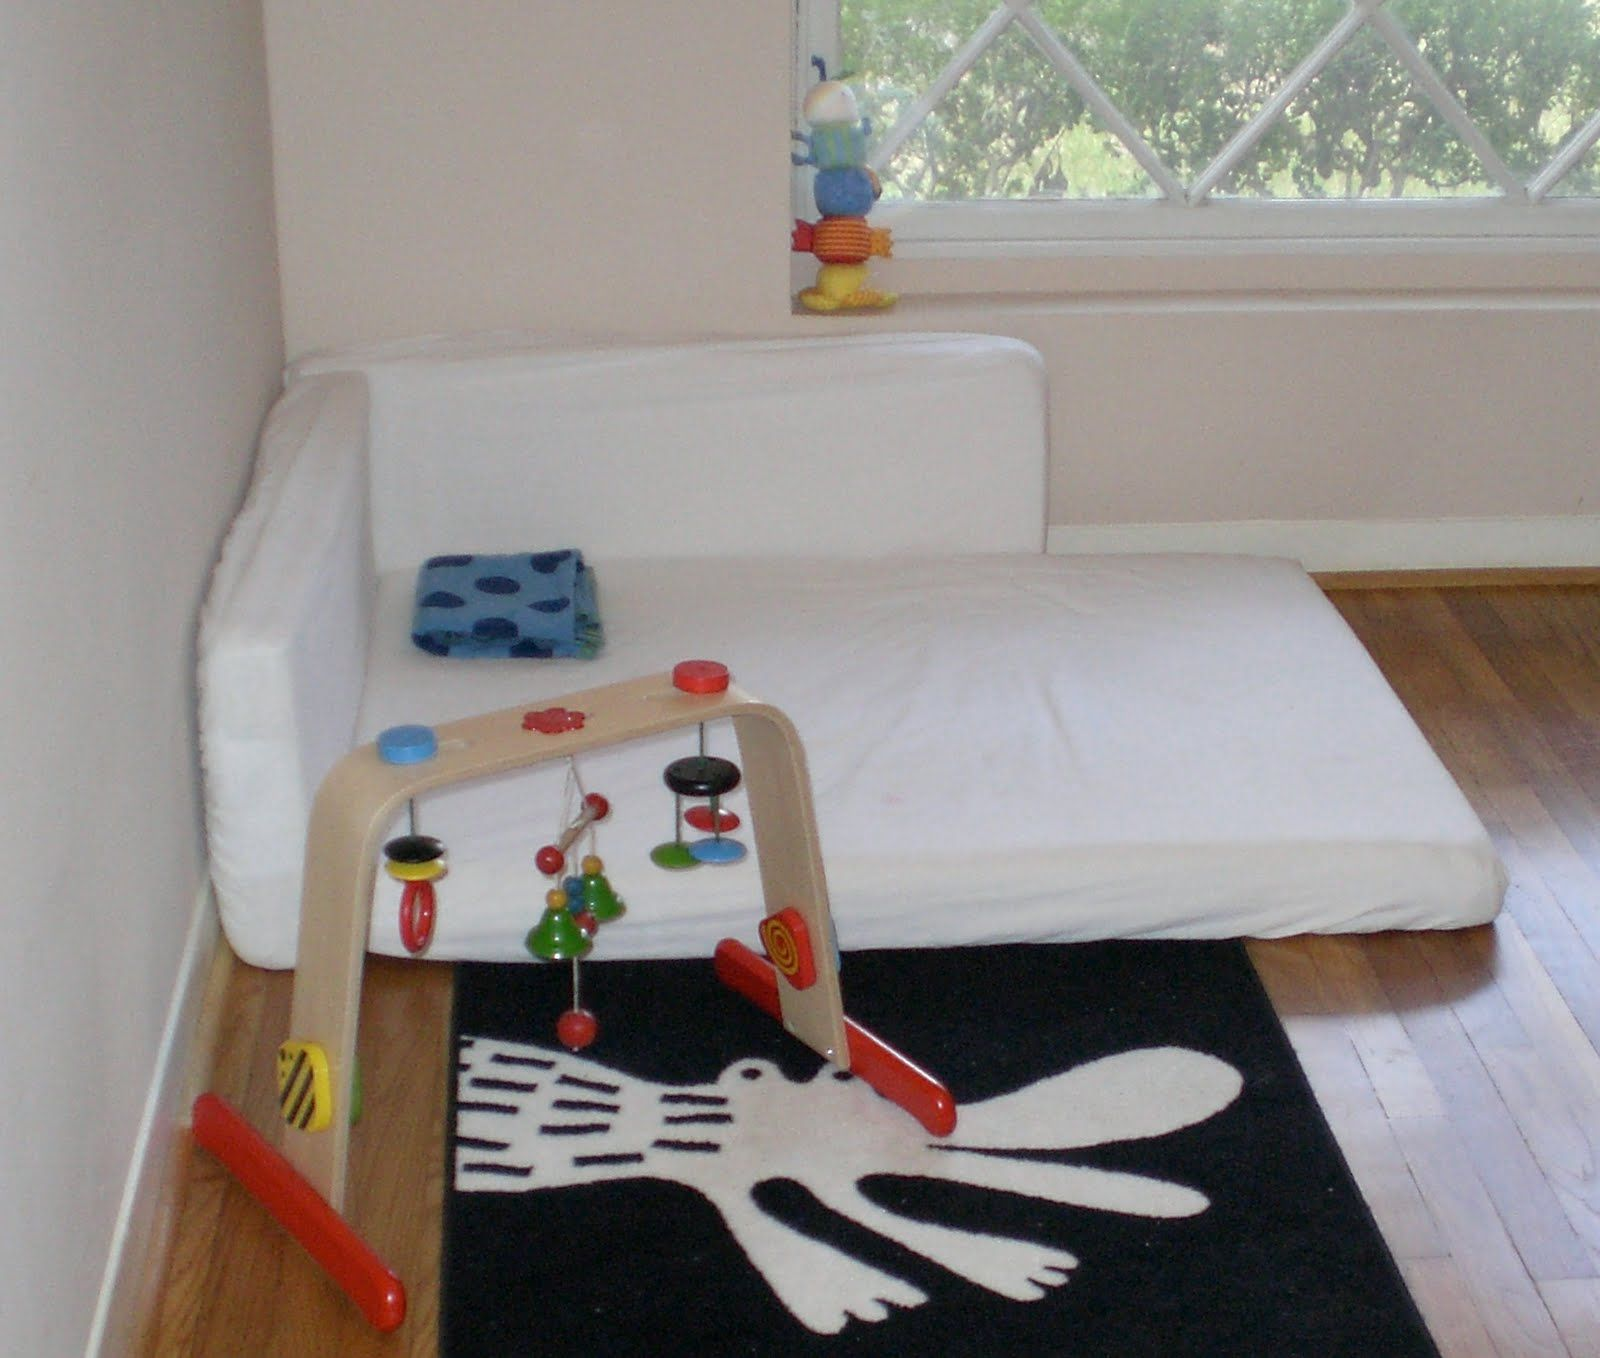 Montessori Floor Bed With Wall Bumpers Play Gym Toys